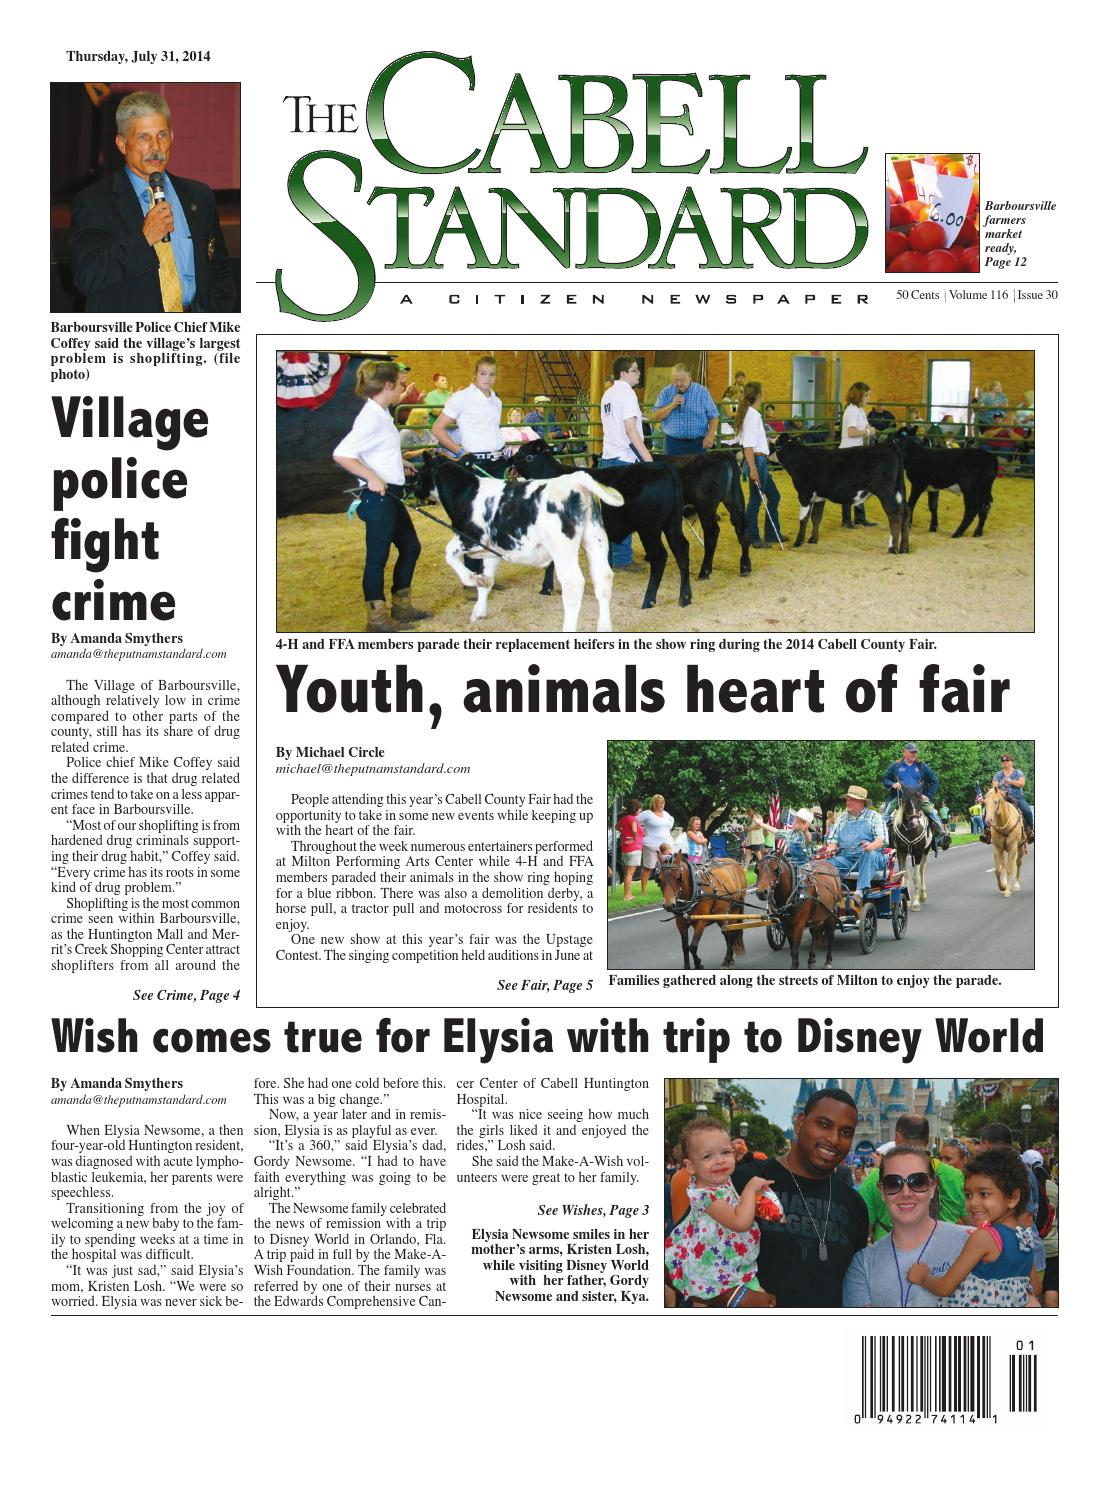 The Cabell Standard, July 31, 2014 by PC Newspapers - issuu